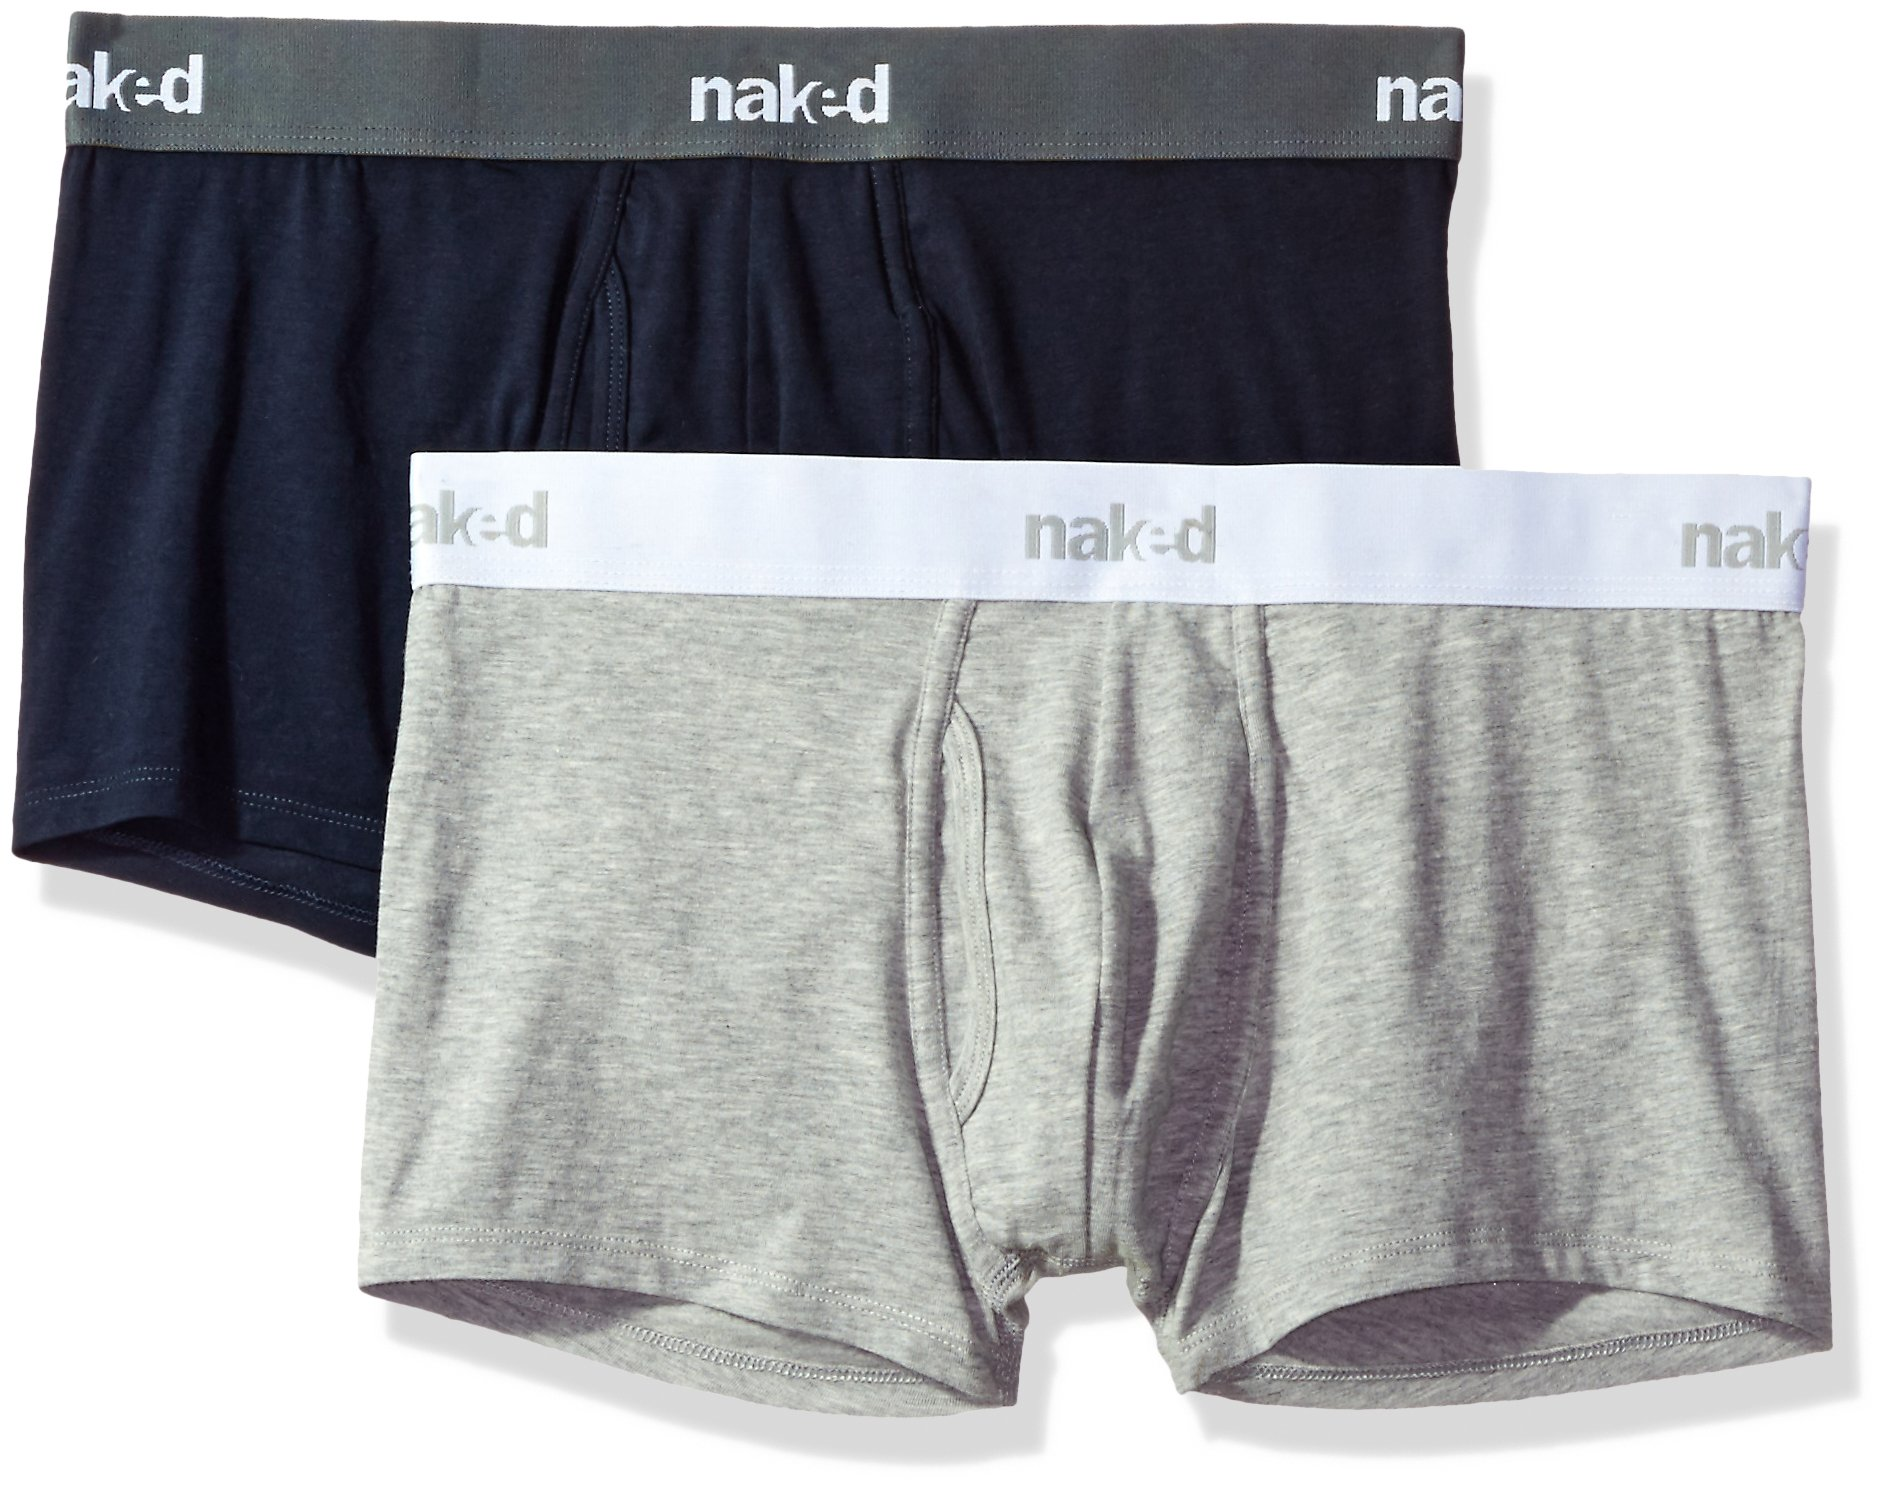 Naked Men's Stretch Cotton Trunks 2 Pack, Peacoat/Metro Grey Combo, X-Large by Naked